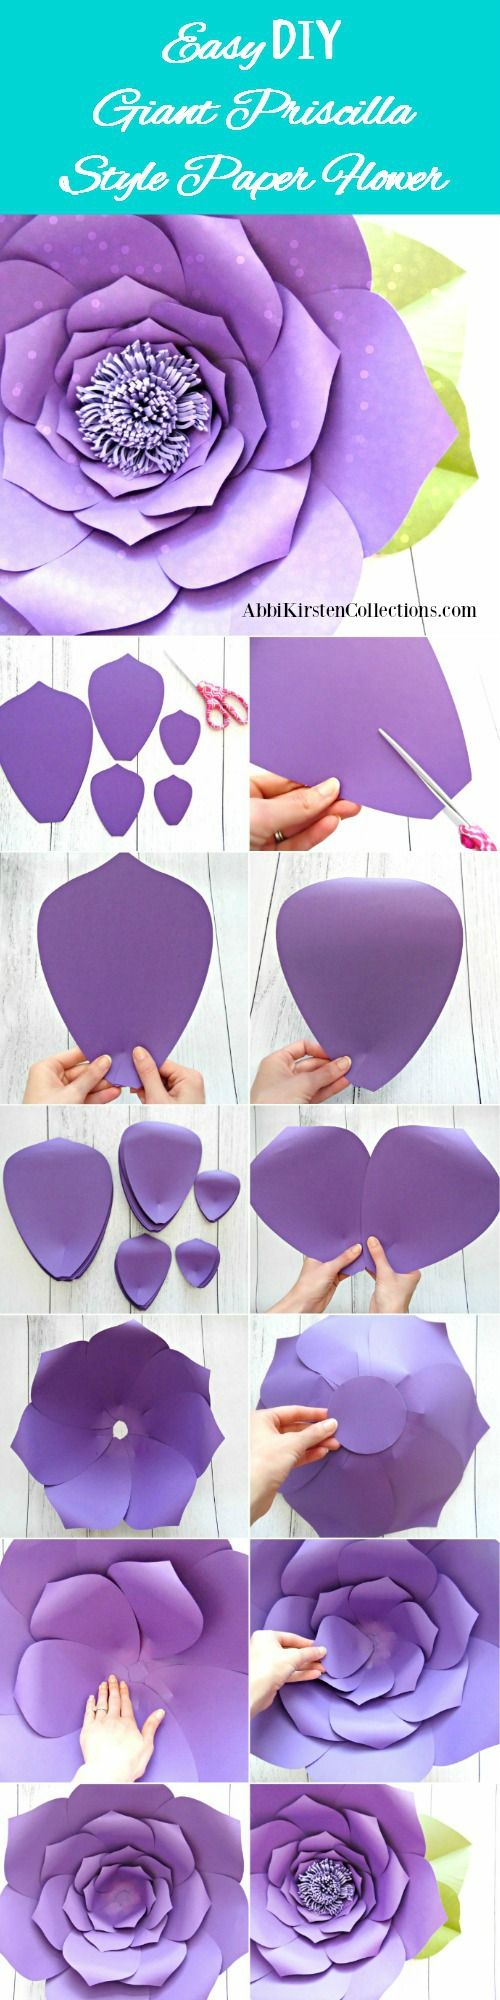 Printable giant paper flower templates. Easy DIY giant paper flowers. Flower tutorials. AbbiKirstenCollections.com